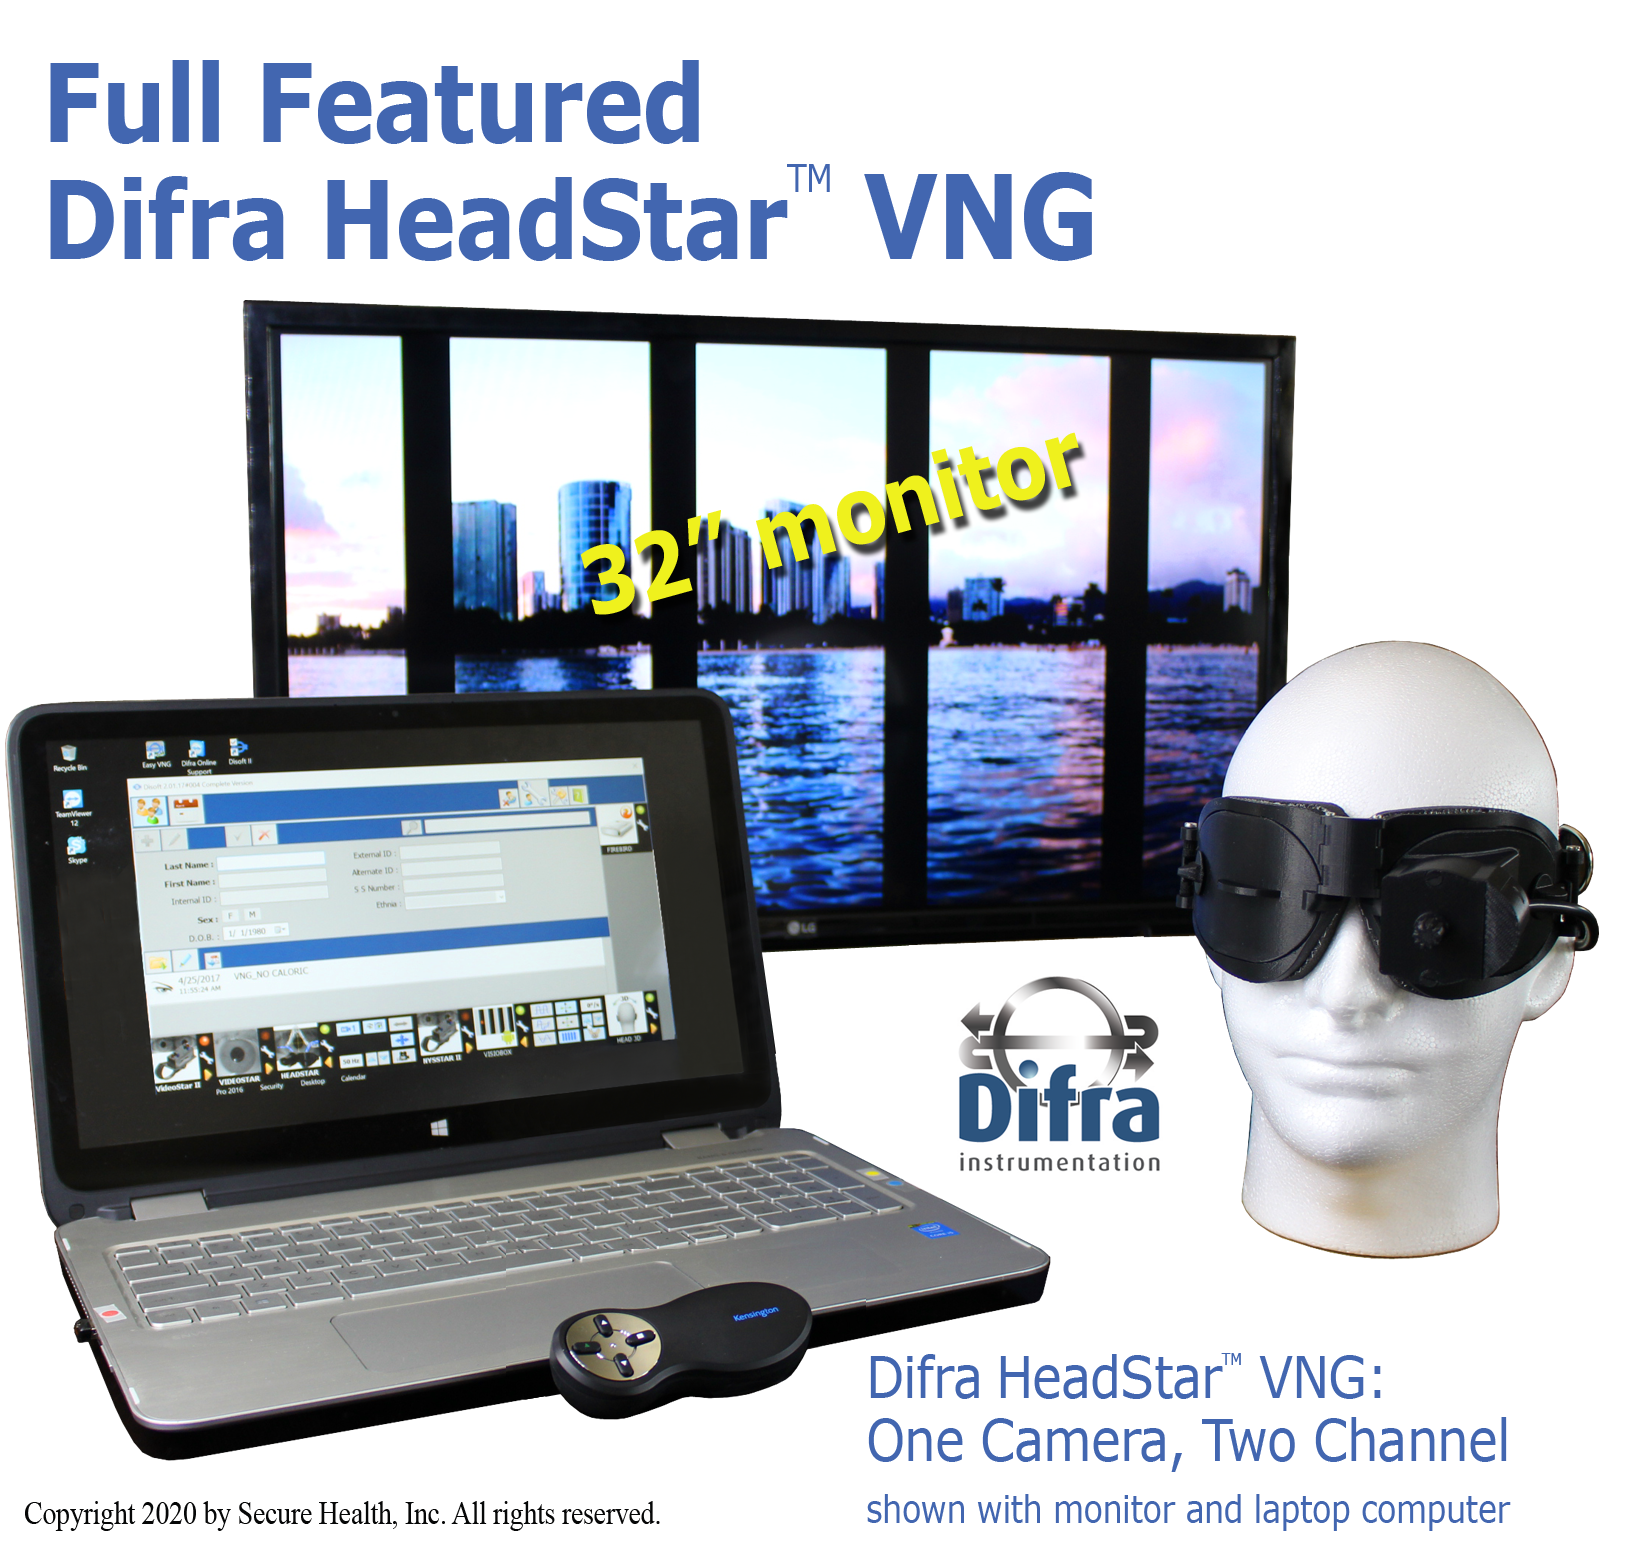 Full Featured Difra HeadStar VNG